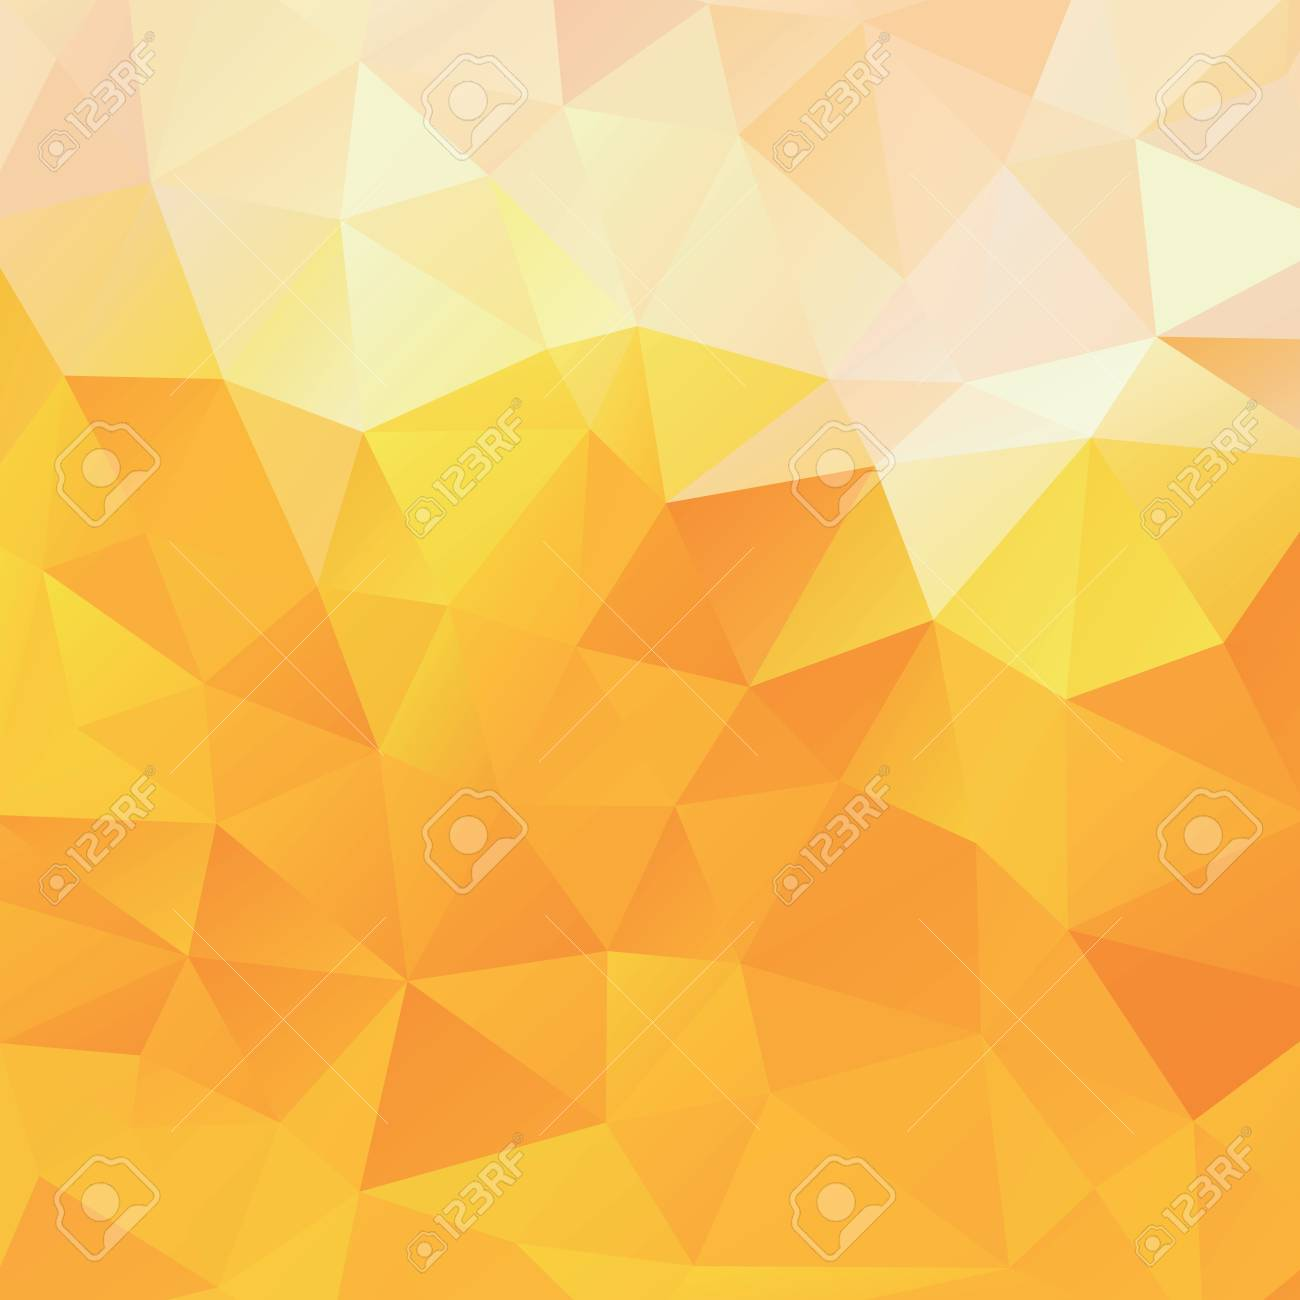 64006492 background of the triangles orange and yellow vector background abstract beer color mesh gradient wa